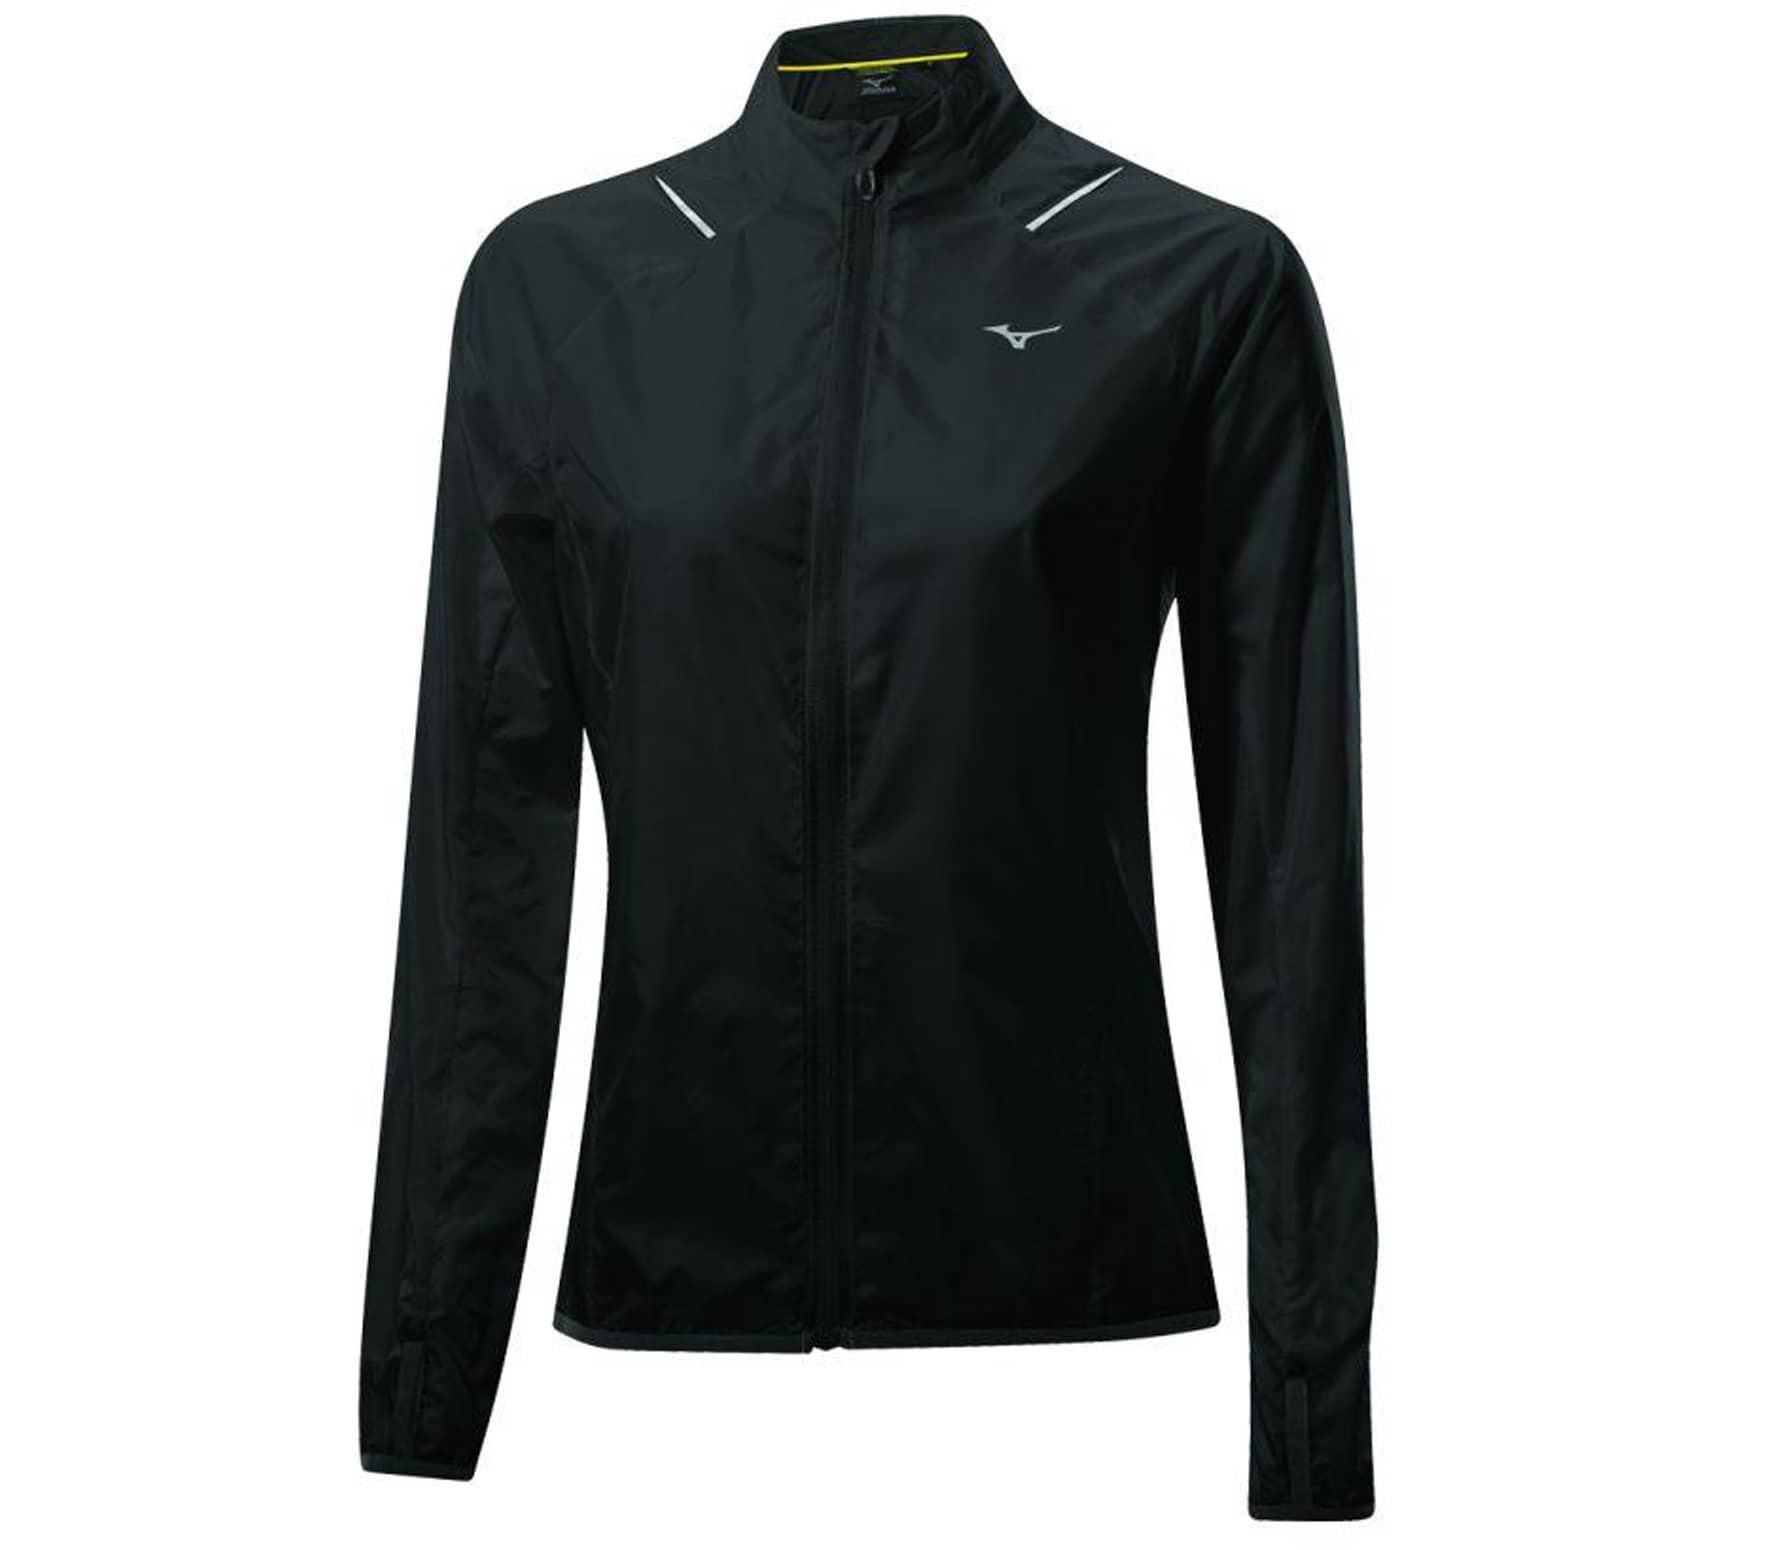 Mizuno - ImpermaLite women's running jacket (sort) - XS thumbnail